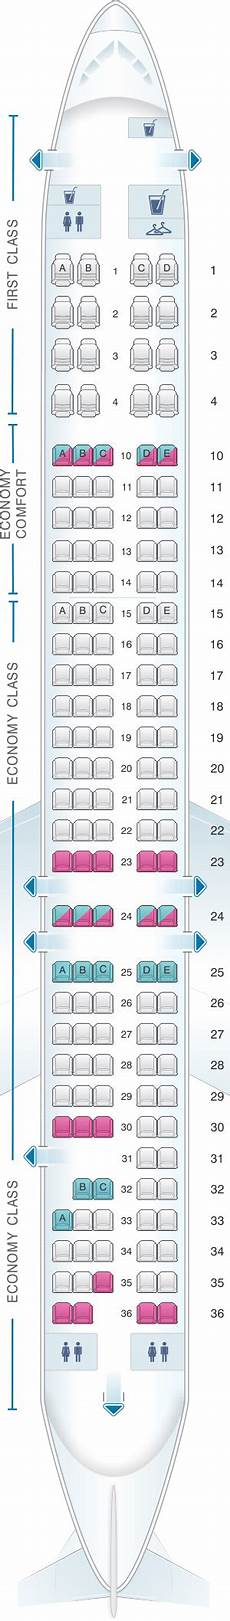 Delta Boeing Douglas Md 80 Seating Chart Seat Map Delta Air Lines Mcdonnell Douglas Md 88 Seatmaestro